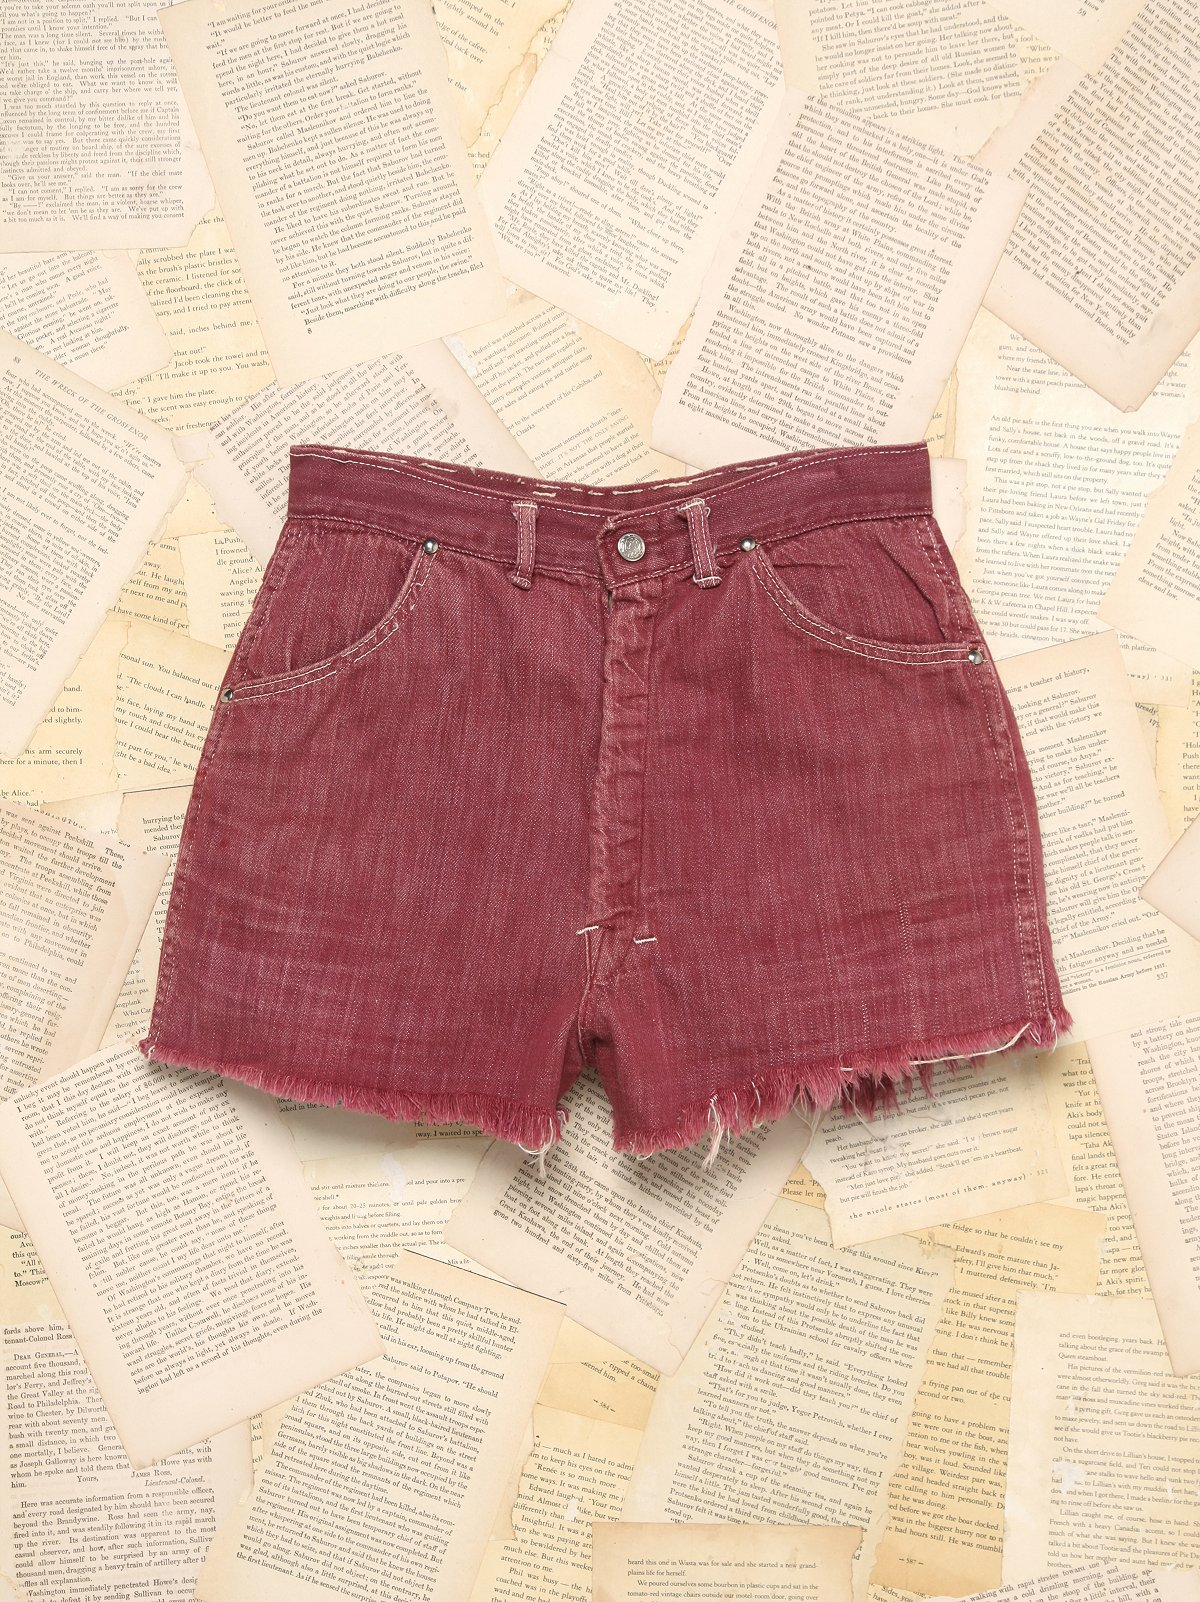 Vintage 1960s Denim Shorts